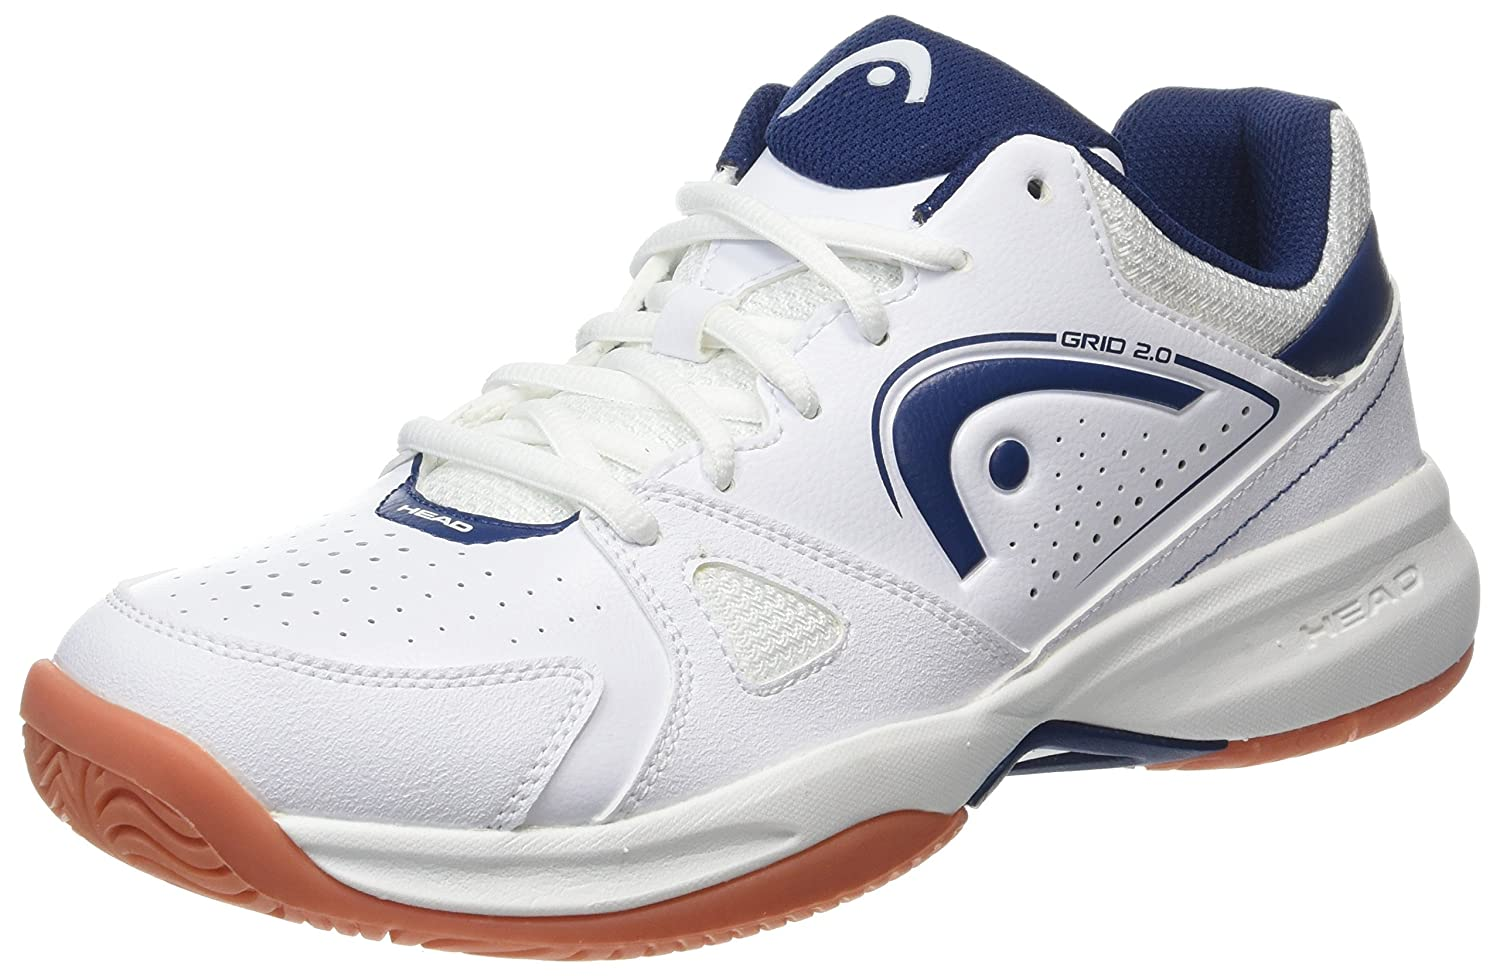 HEAD Men's Grid 2.0 Low Racquetball/Squash Indoor Court Shoes (Non-marking) B010W2YI8A 14 D(M) US|White/Navy